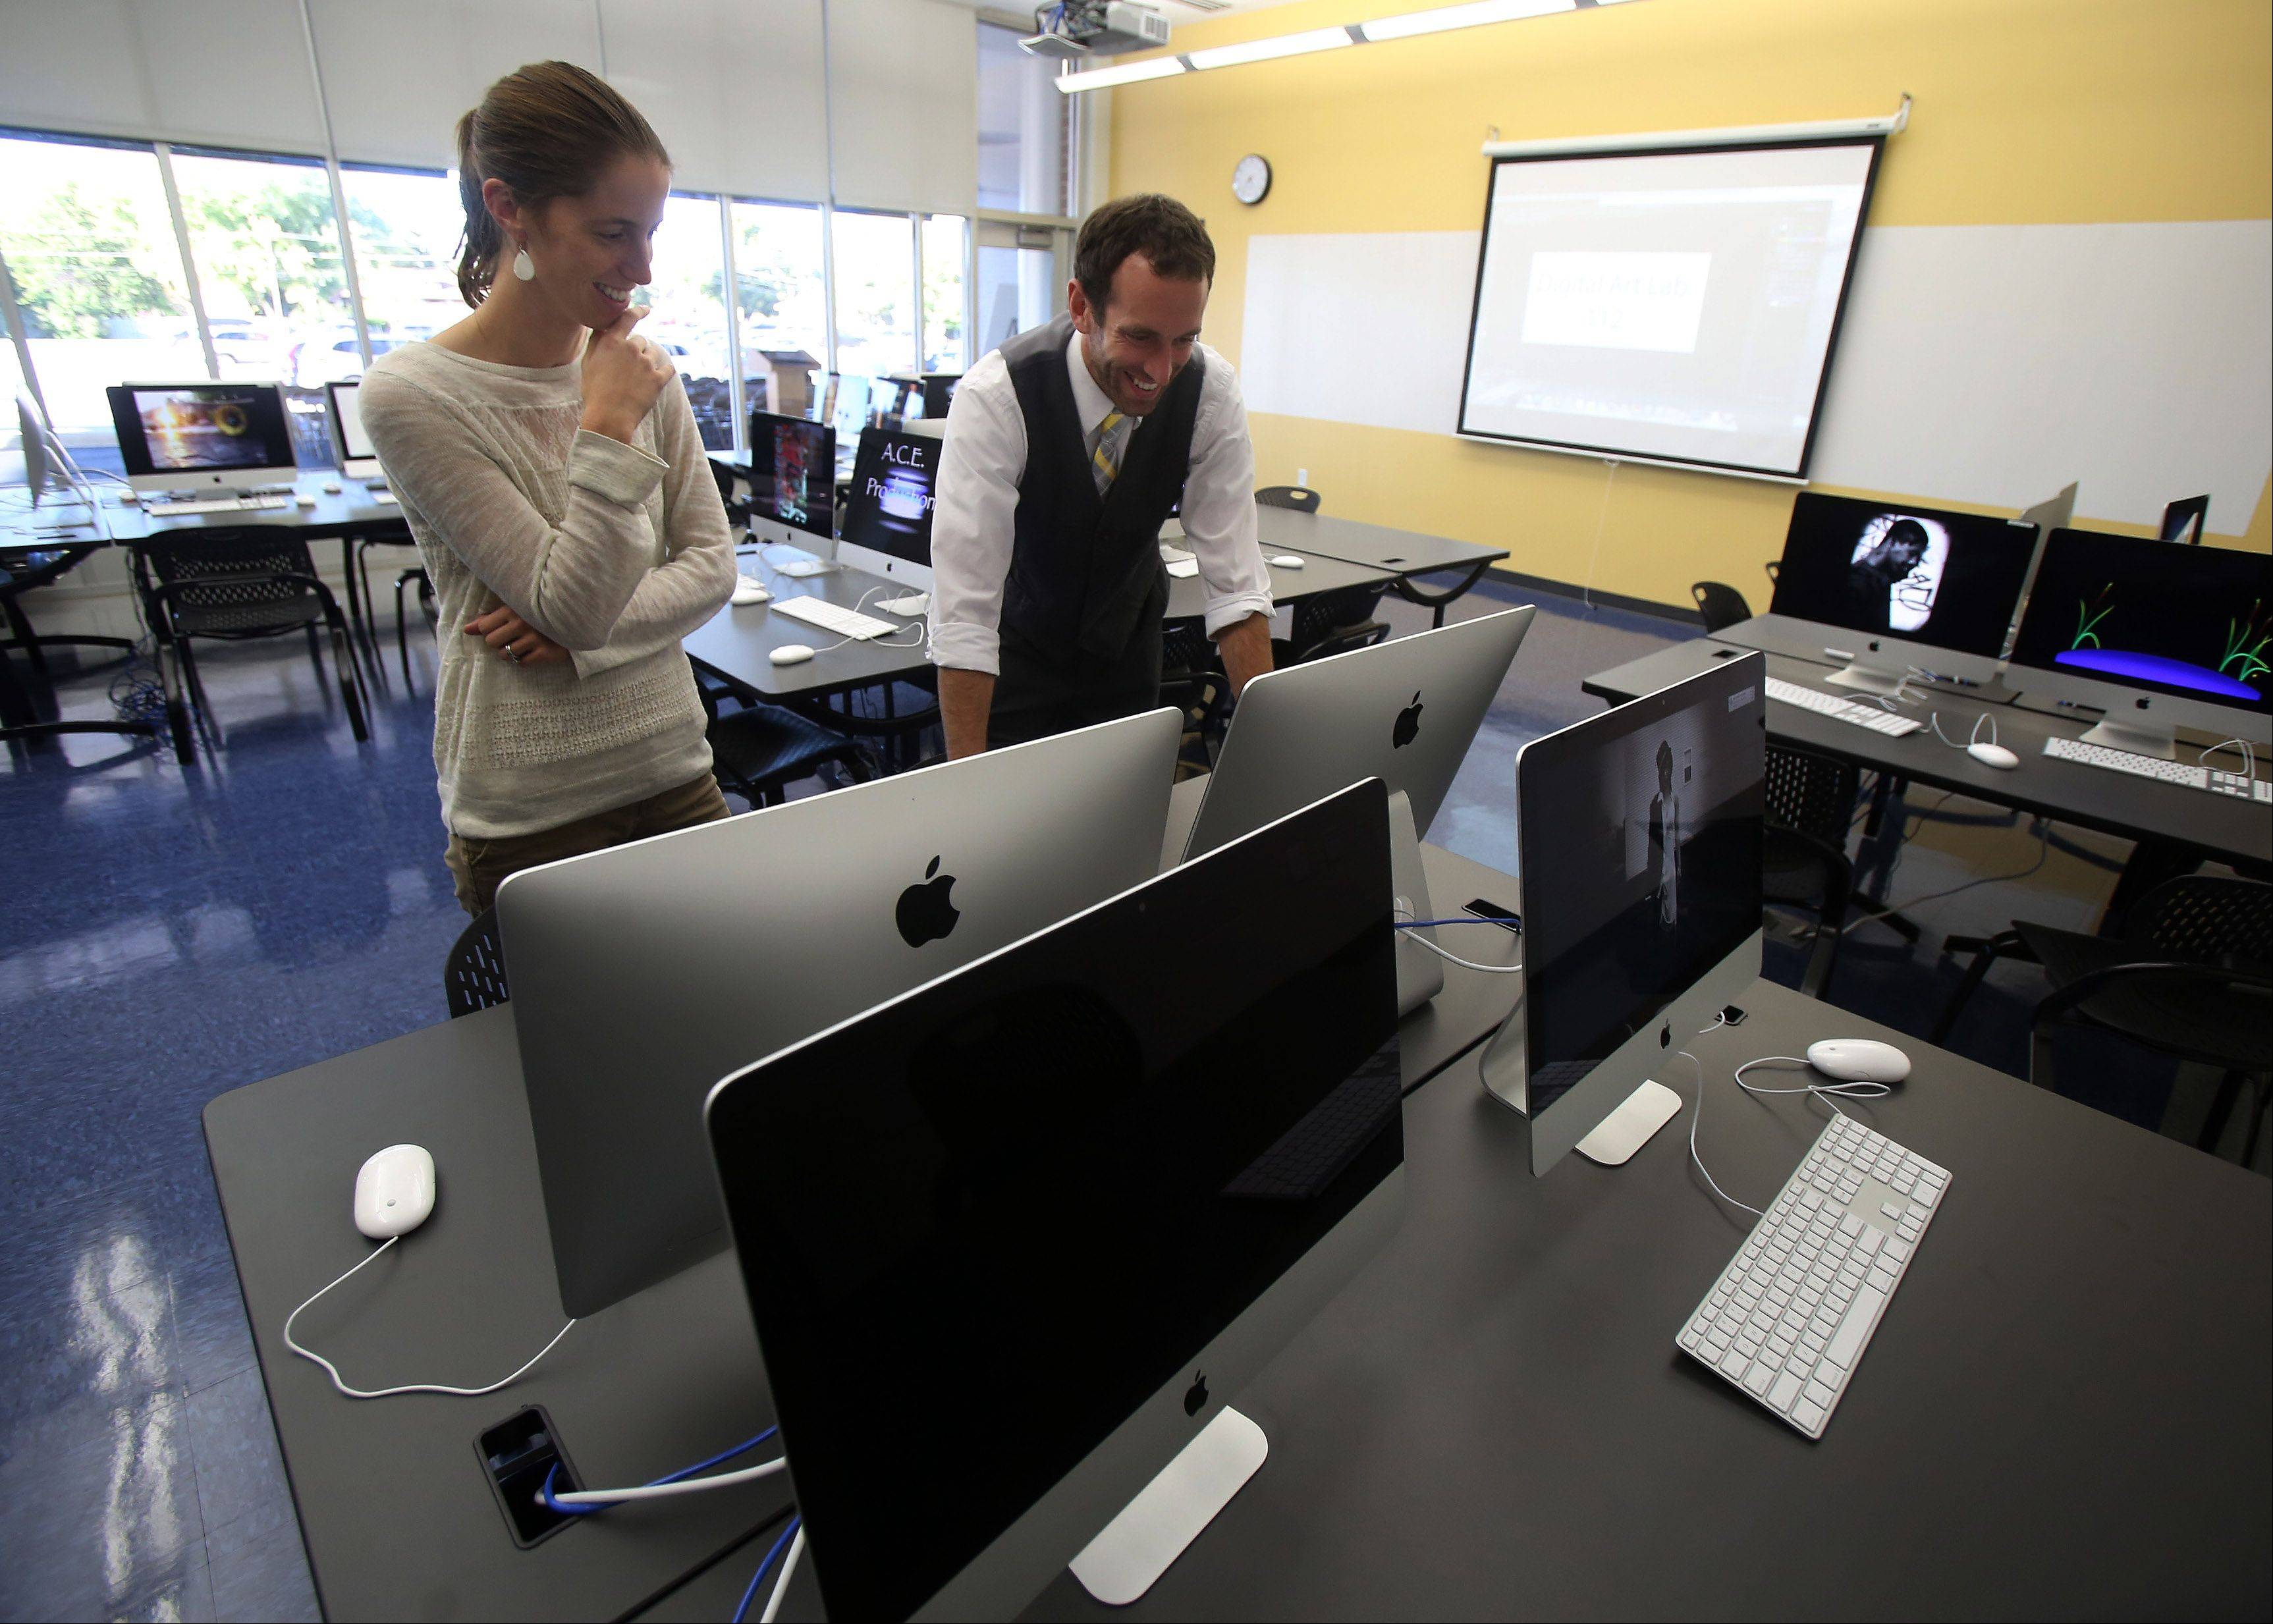 Technical teachers Carole McCulley and Brett Heimstead work with the new computers in the new digital lab during a dedication ceremony for the new addition at Warren High School -- O'Plaine Campus Tuesday in Gurnee. The addition includes 10 new science classrooms, a digital lab classroom, meeting rooms and teacher offices.